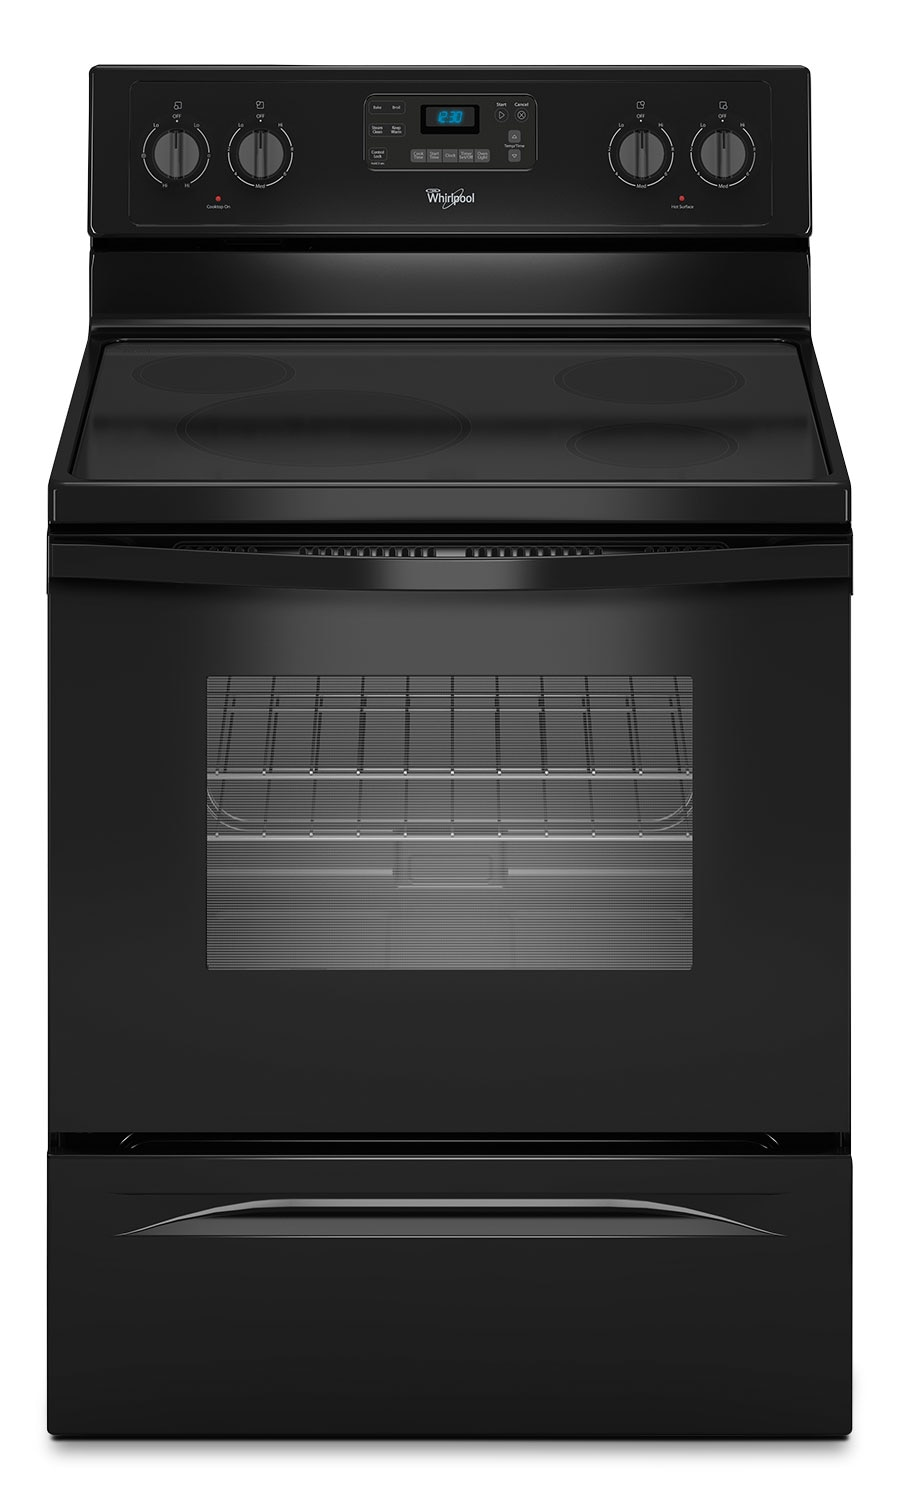 Cooking Products - Whirlpool Black Freestanding Electric Range with FlexHeat™ Element (4.8 Cu. Ft.) - YWFE330W0EB